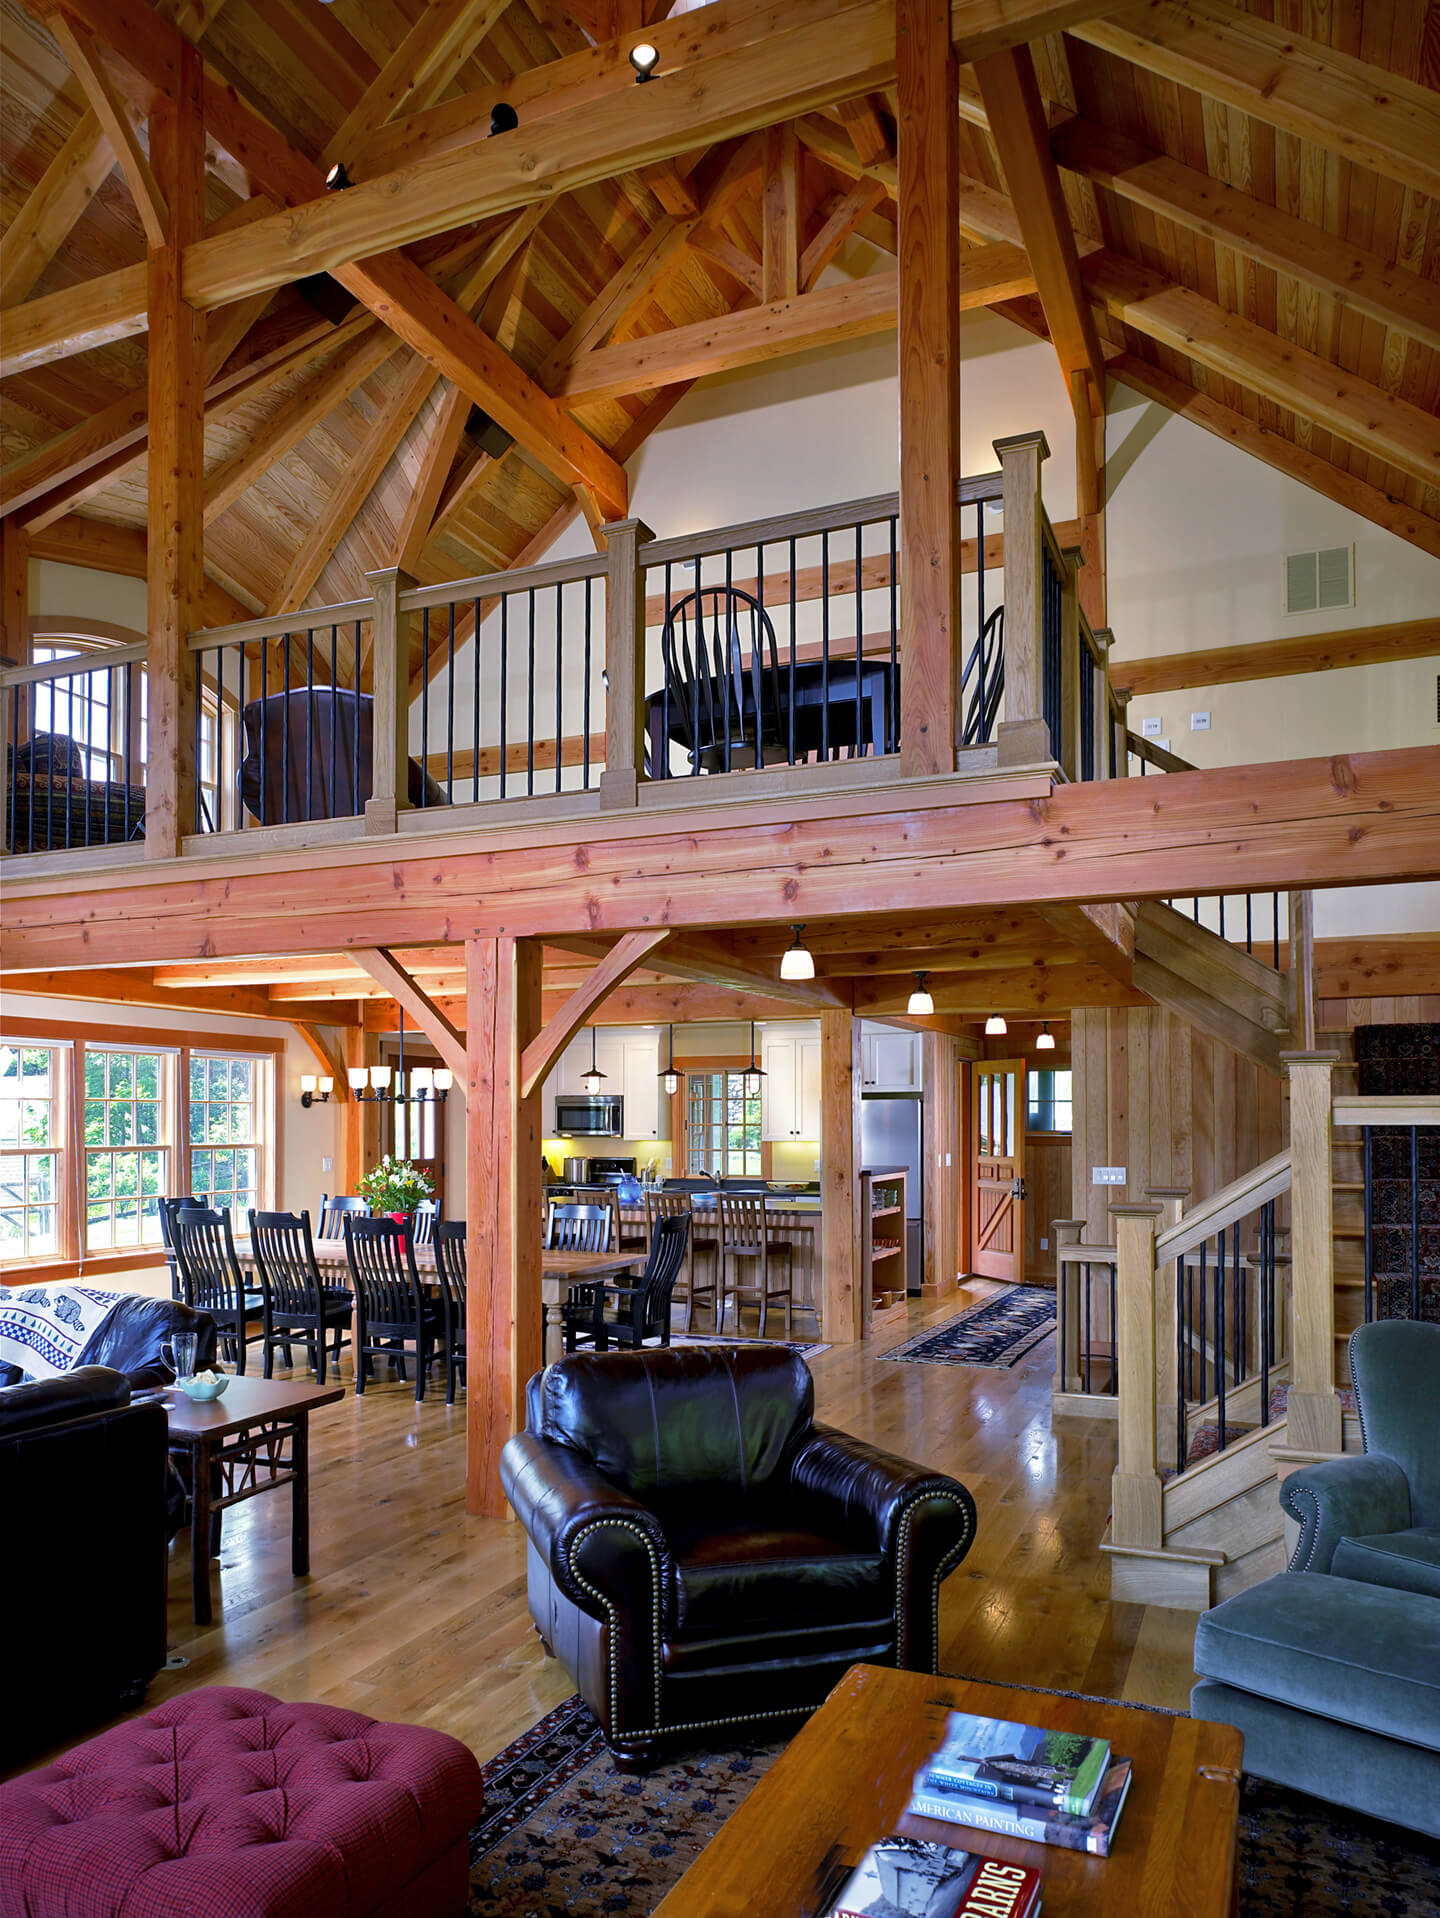 interior view of a two story house near Wellesley